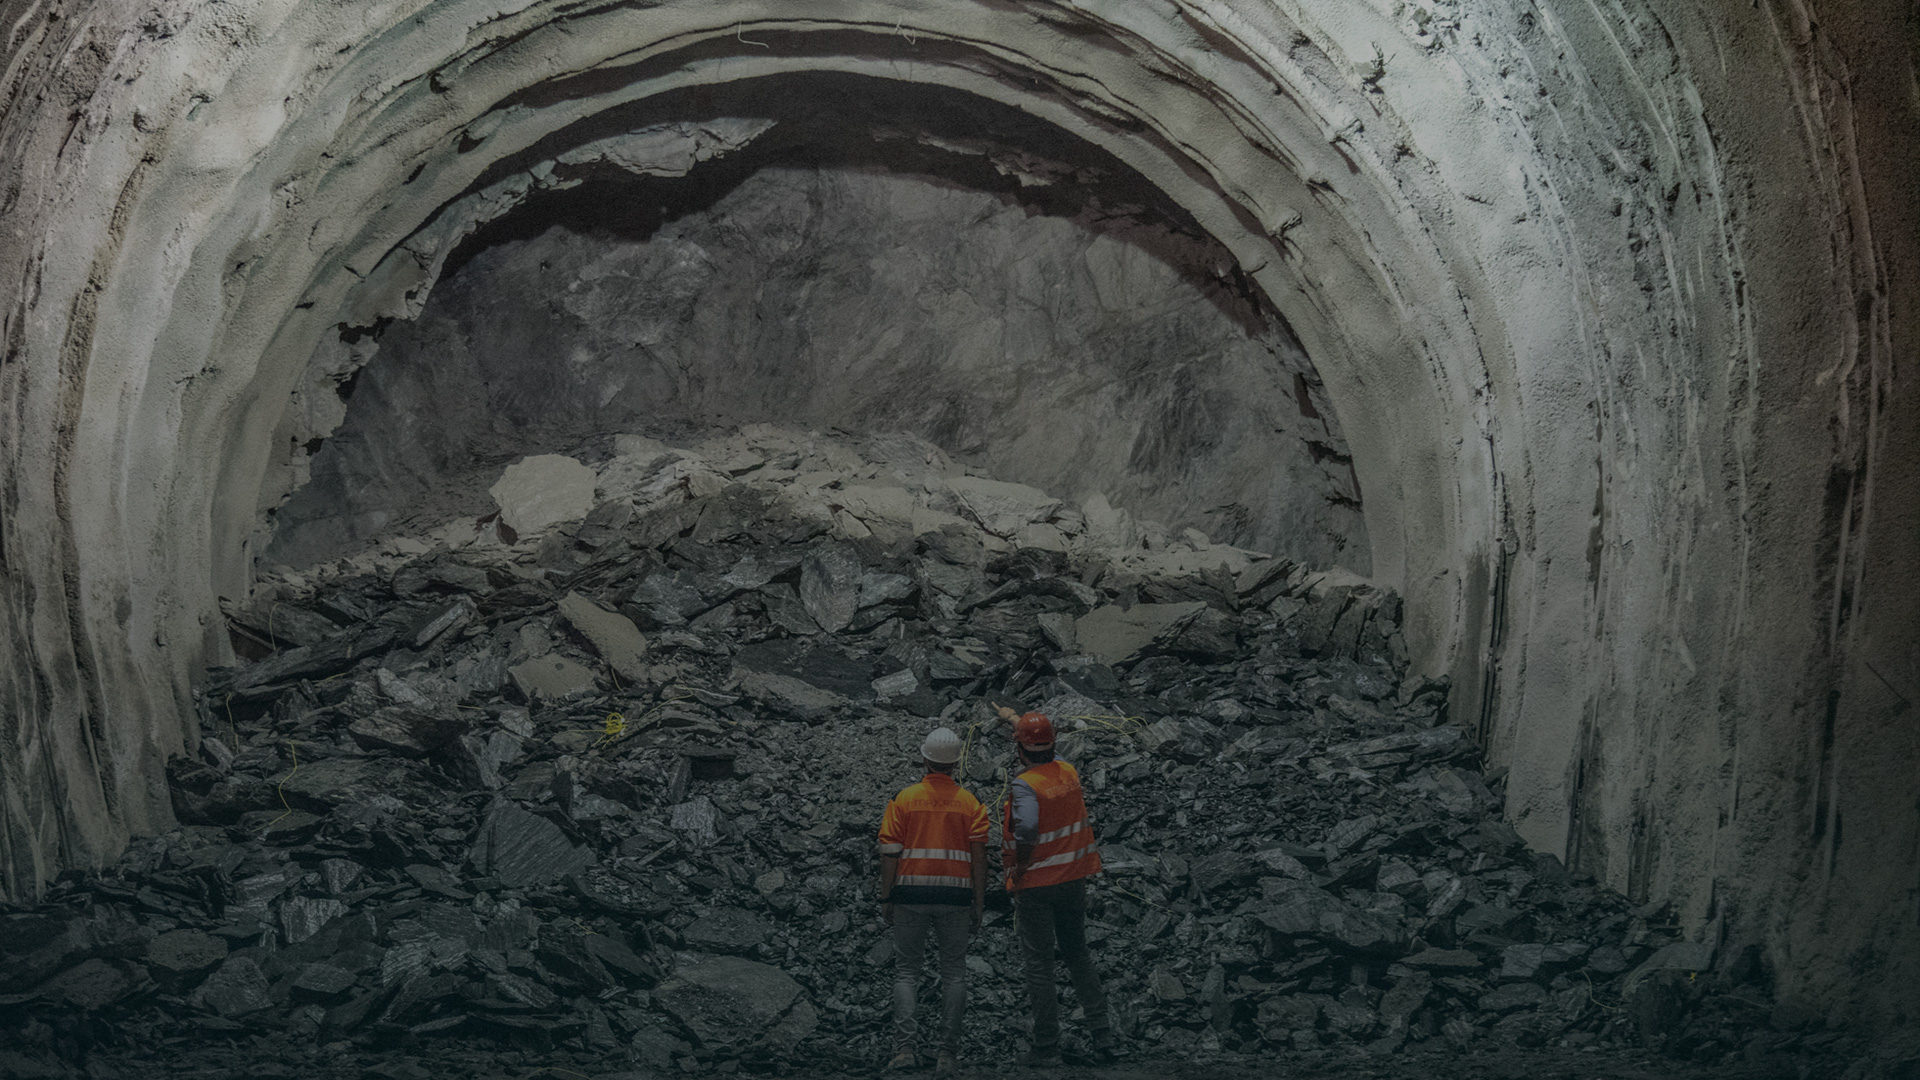 NFCA Africa Mining selects MAXAM as blasting solutions supplier for its underground copper mine in Zambia